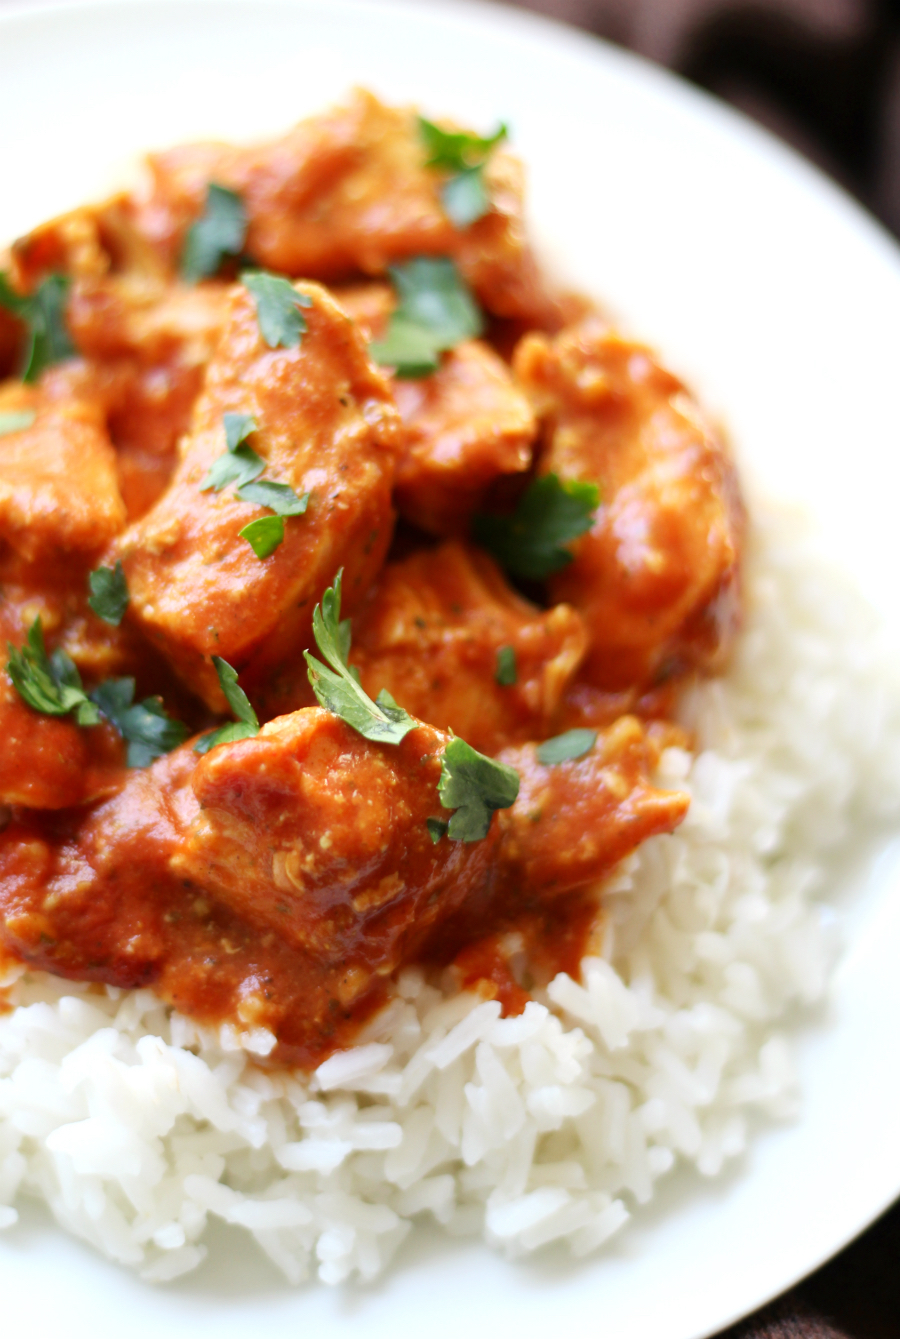 Chicken Tikki Masala (Gluten-Free, Dairy-Free, Paleo) | Strength and Sunshine @RebeccaGF666 Chicken Tikki Masala is a classic Indian dish now with a gluten-free, dairy-free, paleo, and allergy-friendly recipe! With a creamy tomato and coconut yogurt sauce, this comforting dish will make a great healthy weeknight dinner that packs in the flavor!